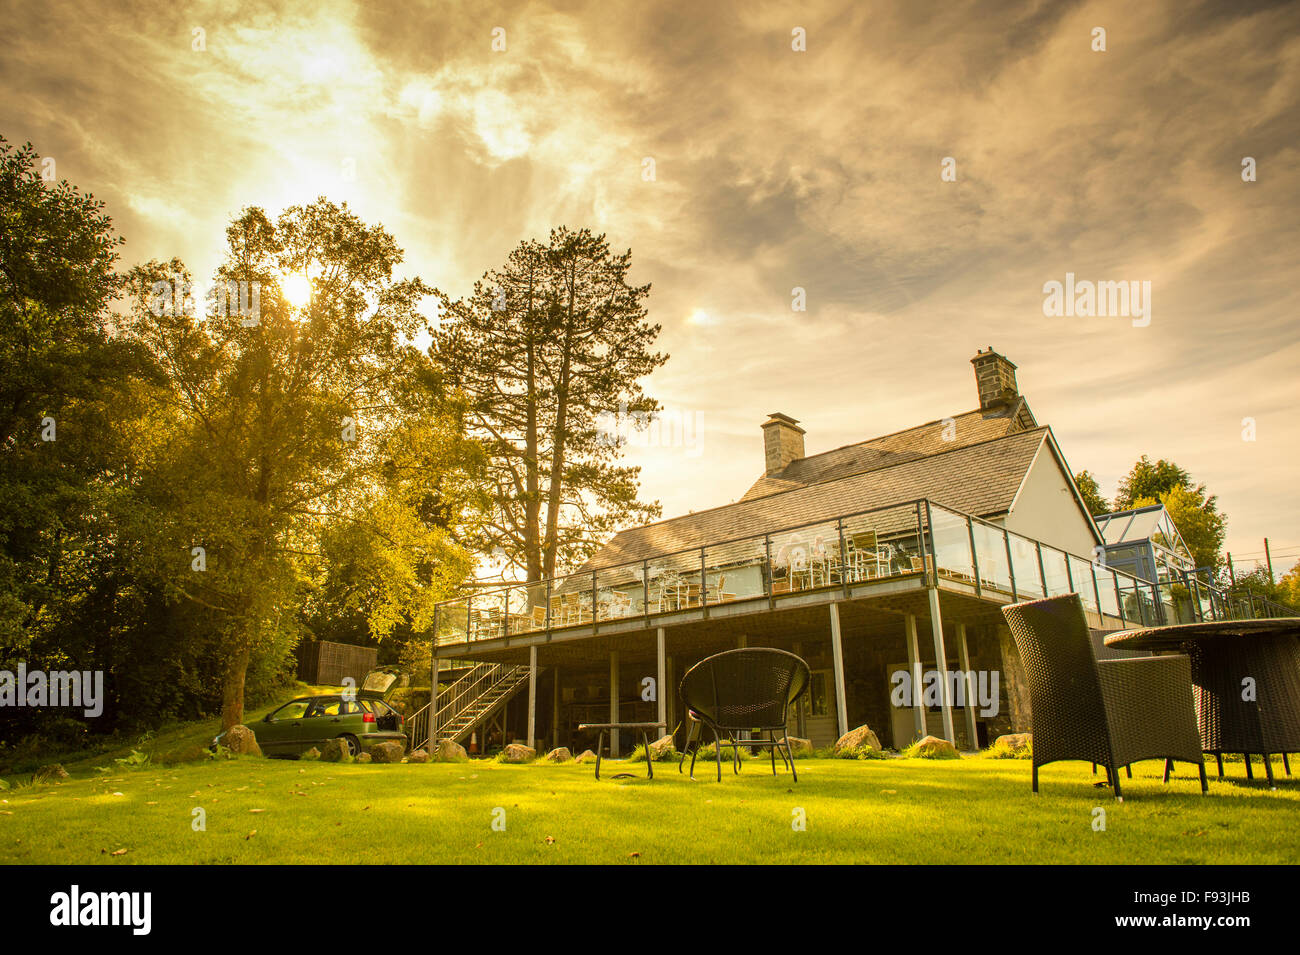 Exterior The Cross Foxes 5 Five Star Luxury Hotel And Restaurant Stock Photo Alamy